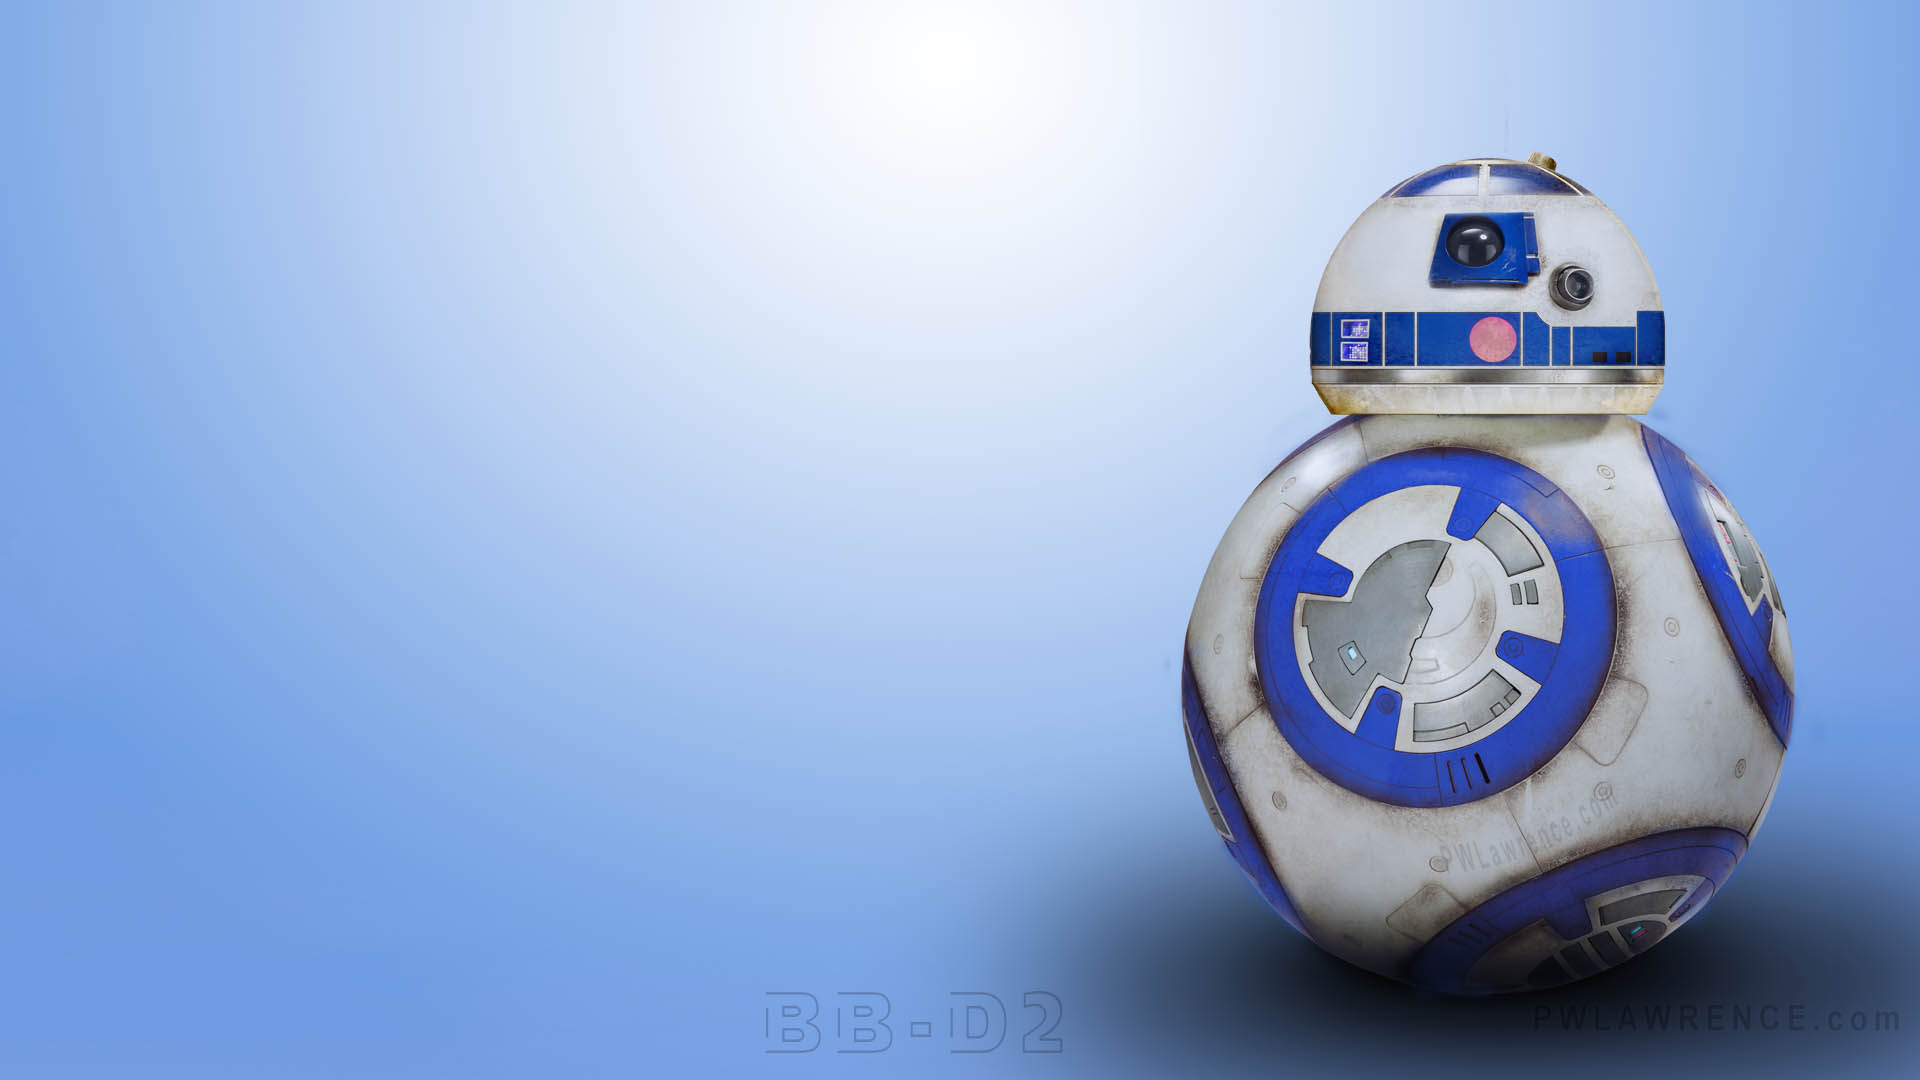 bb8 wallpaper hd - photo #21